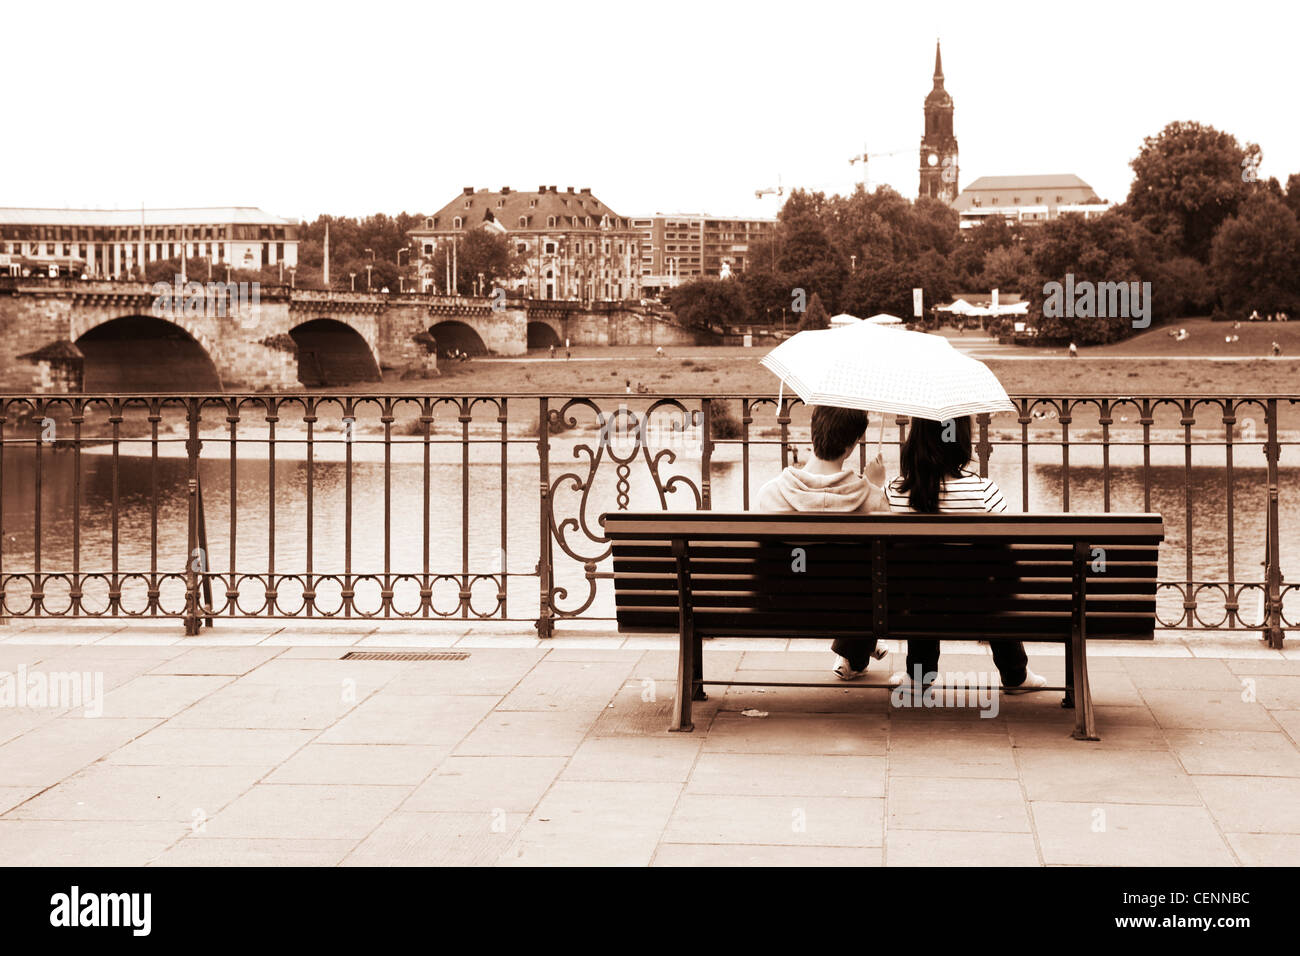 Couple of lovers sitting on a Bench under an umbrella in the rain. Dresden, Saxony, Germany - Stock Image